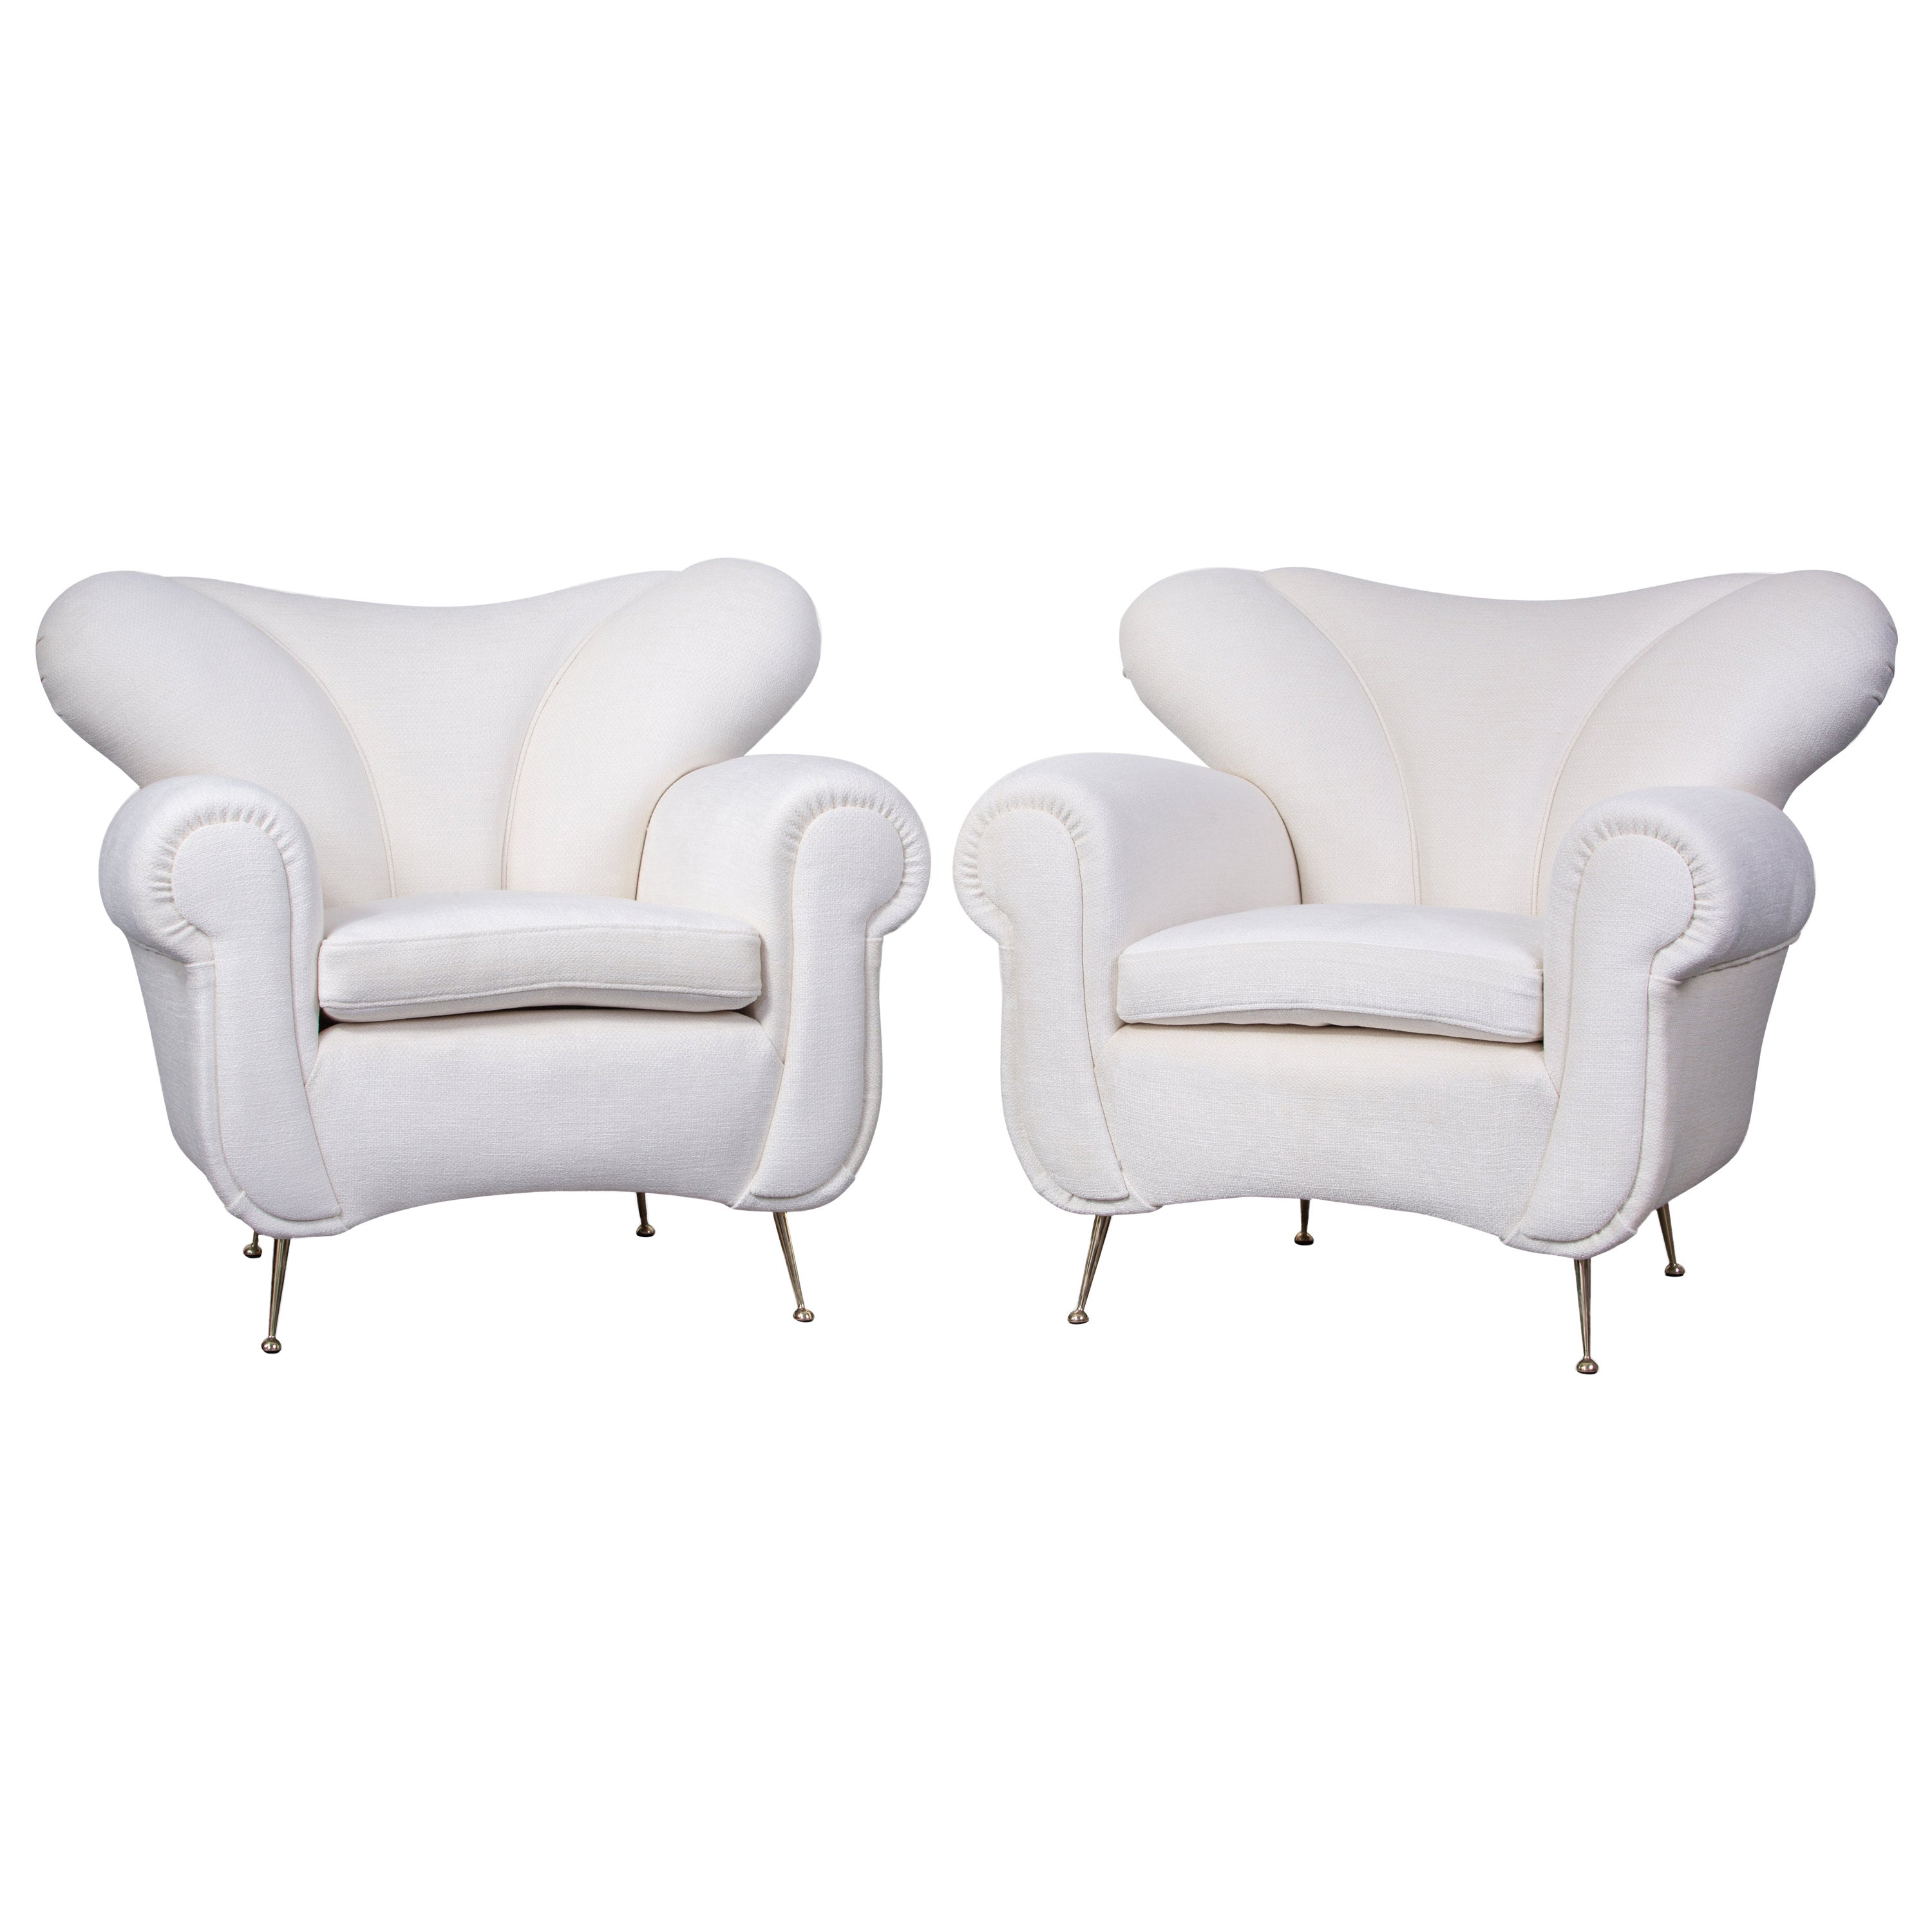 Pair of Mid-Century Armchairs, Italy 1950s, Reupholstered in Pierre Frey Velvet